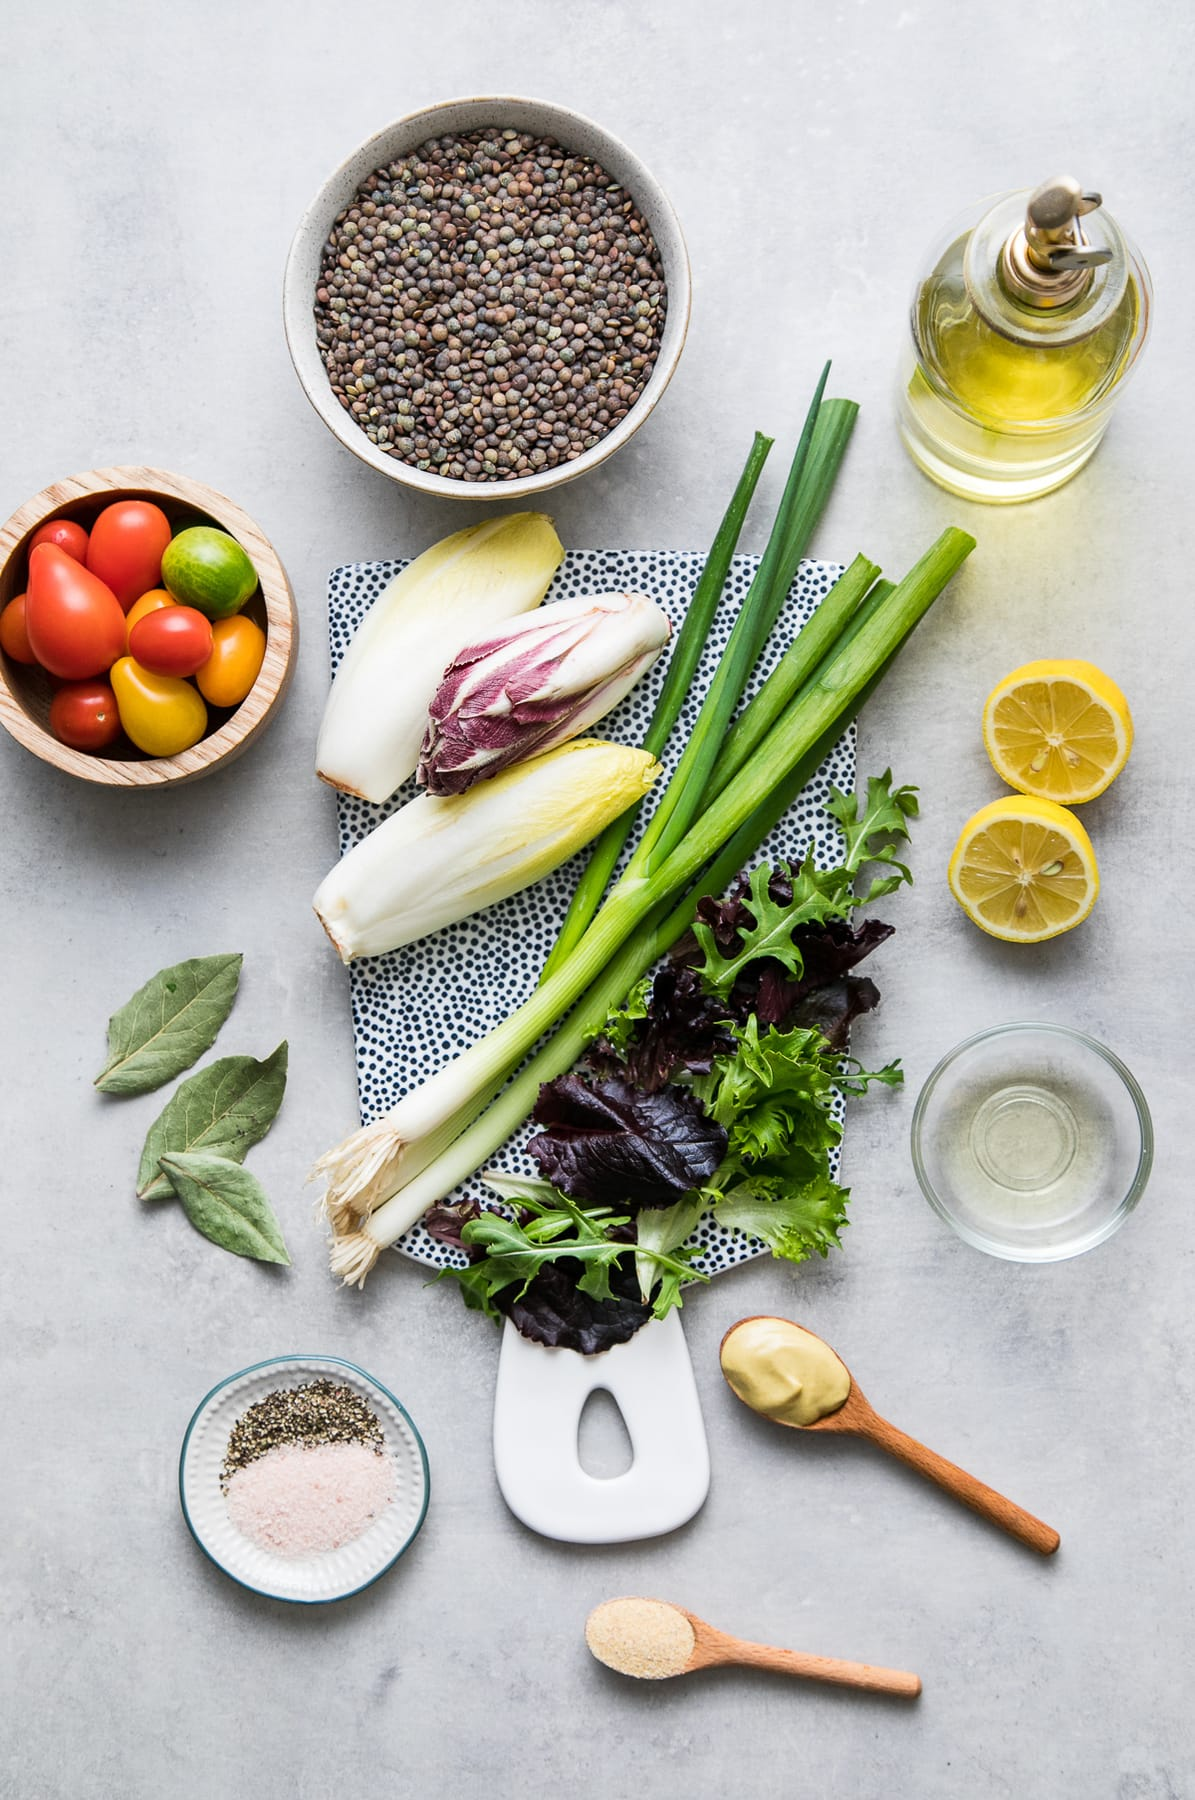 top down view of ingredients used to make french lentil and bitter greens salad.